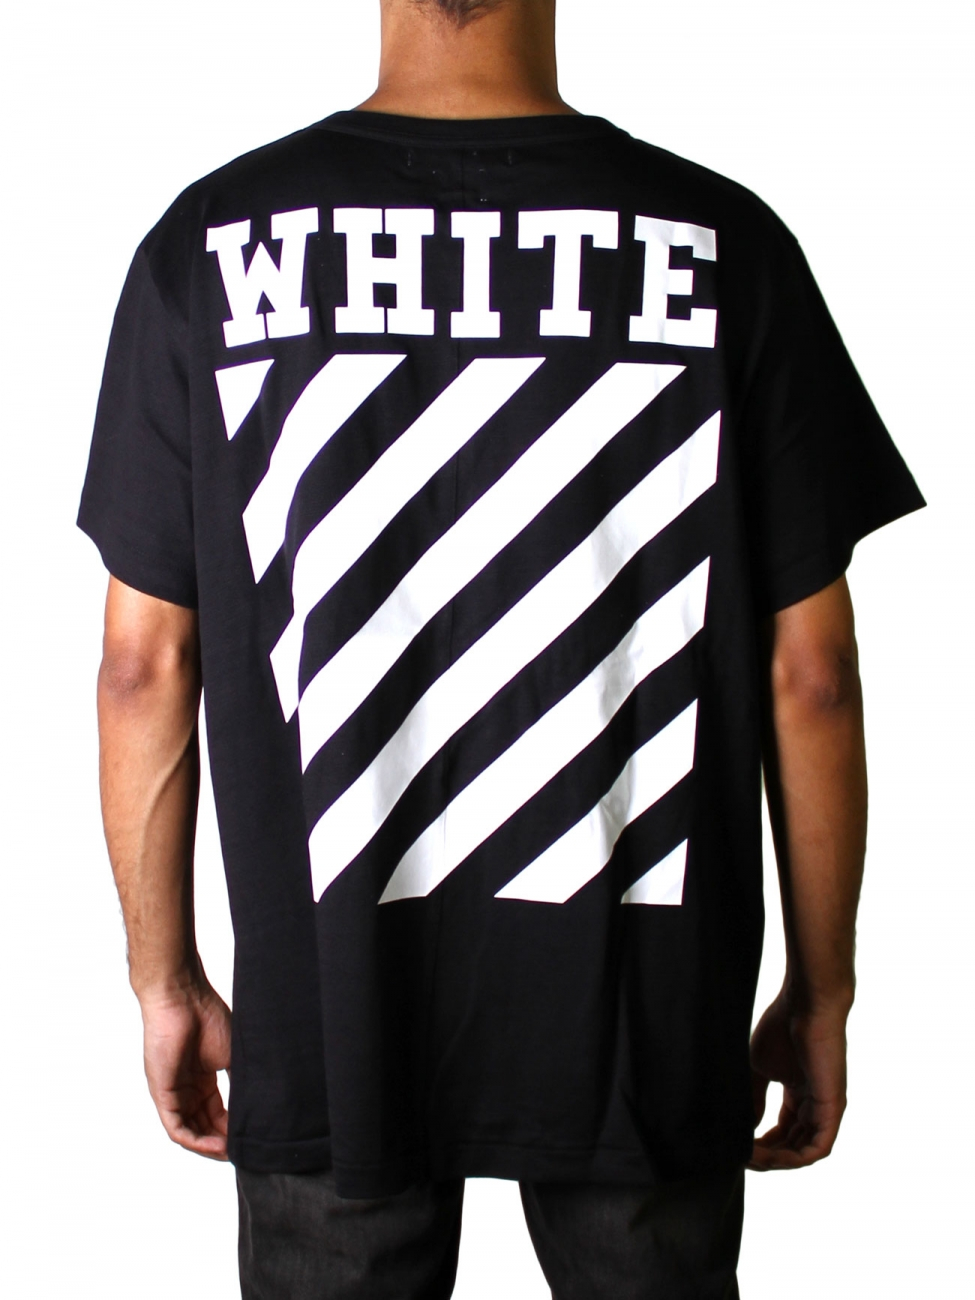 off white black t shirt artee shirt. Black Bedroom Furniture Sets. Home Design Ideas